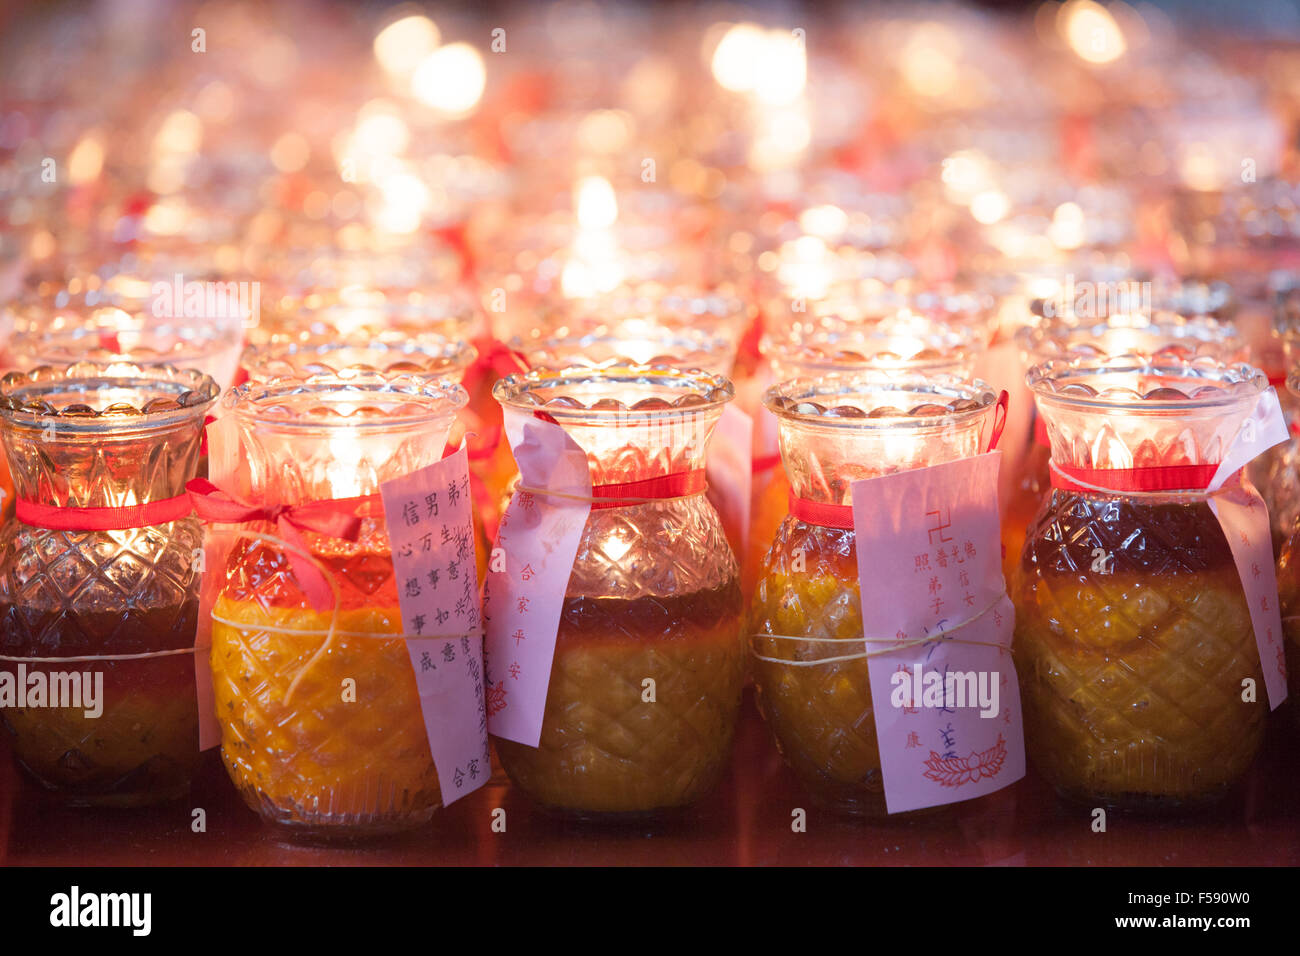 Georgetown, Malaysia - 02 August, 2014: Burning candles in Kuan Yin Temple is one of the oldest Chinese temples Stock Photo